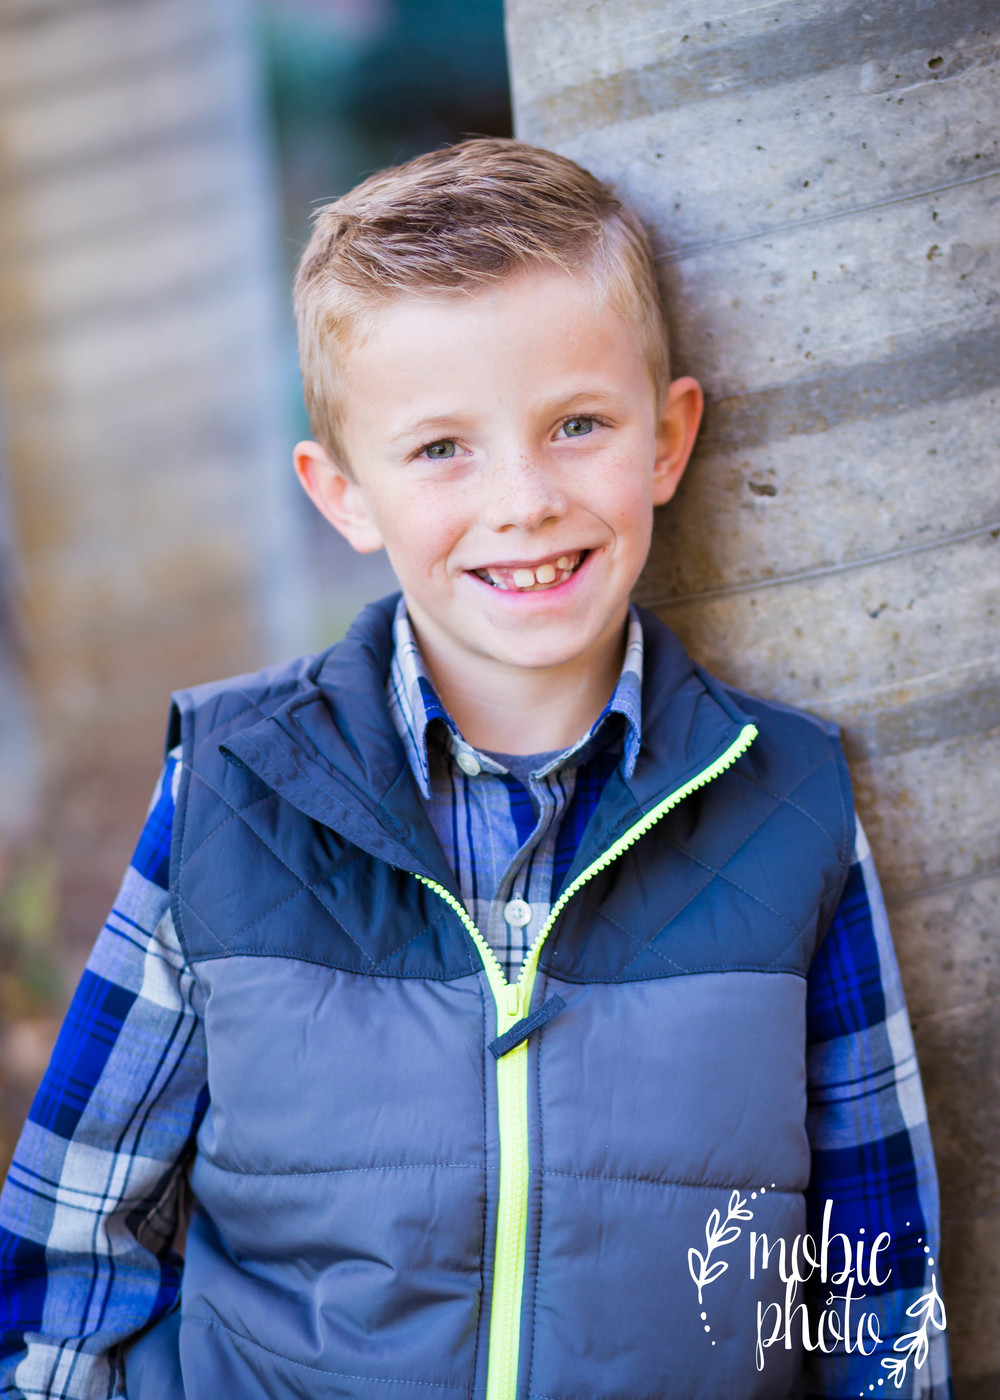 Mobie Photo - Family Photographer in Lehi, Utah